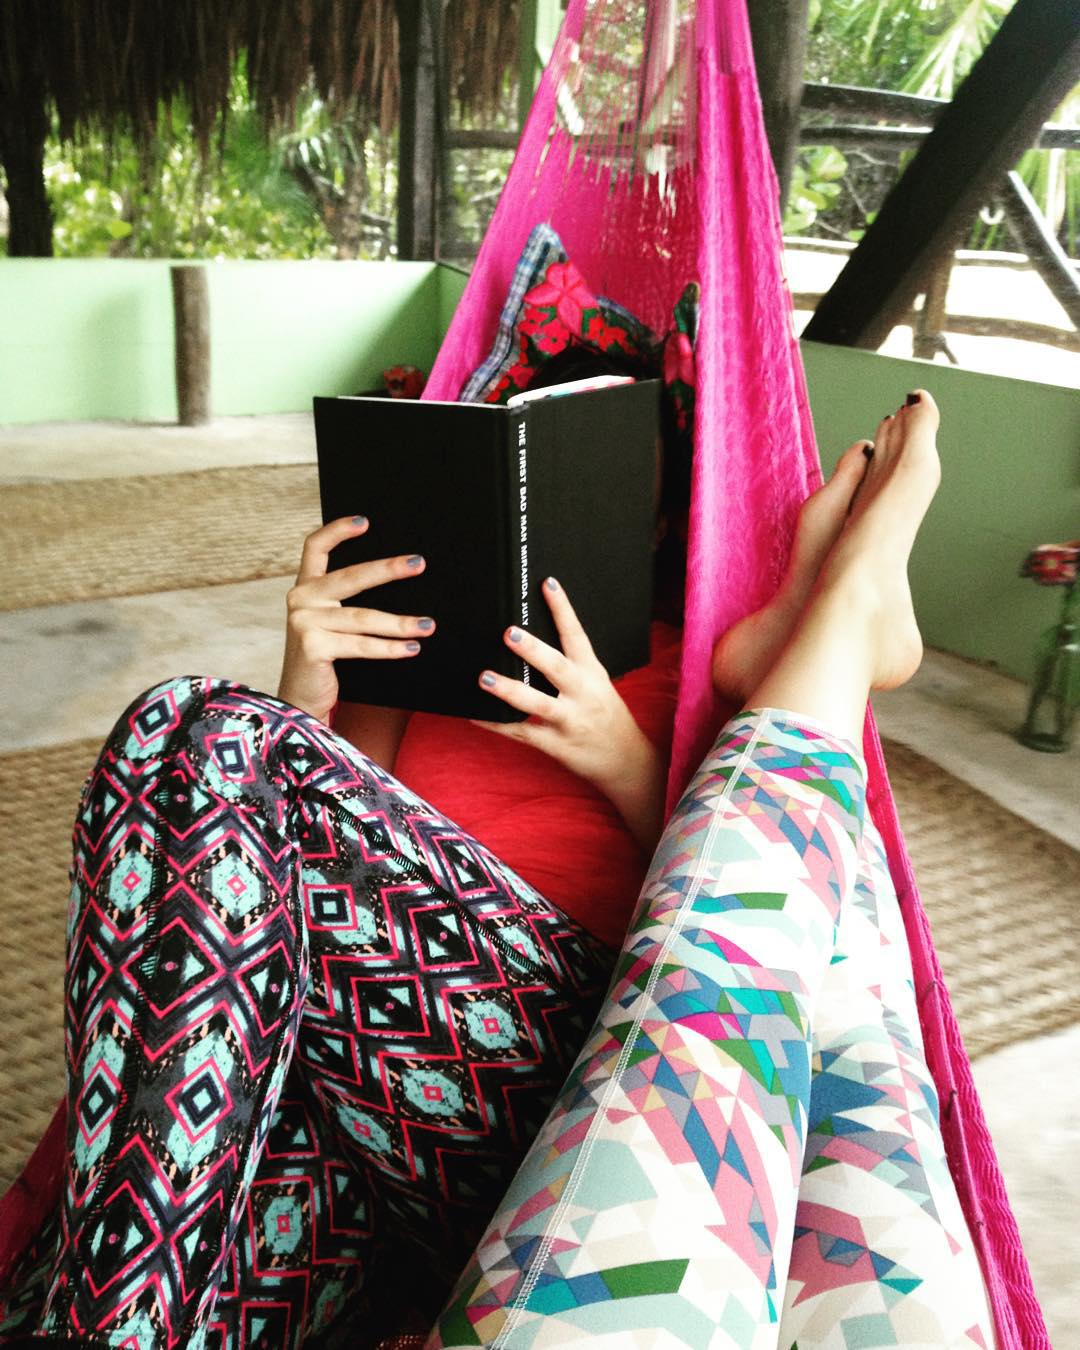 Saturday mornings: relaxing & reading in Threads 4 Thought active wear ✌